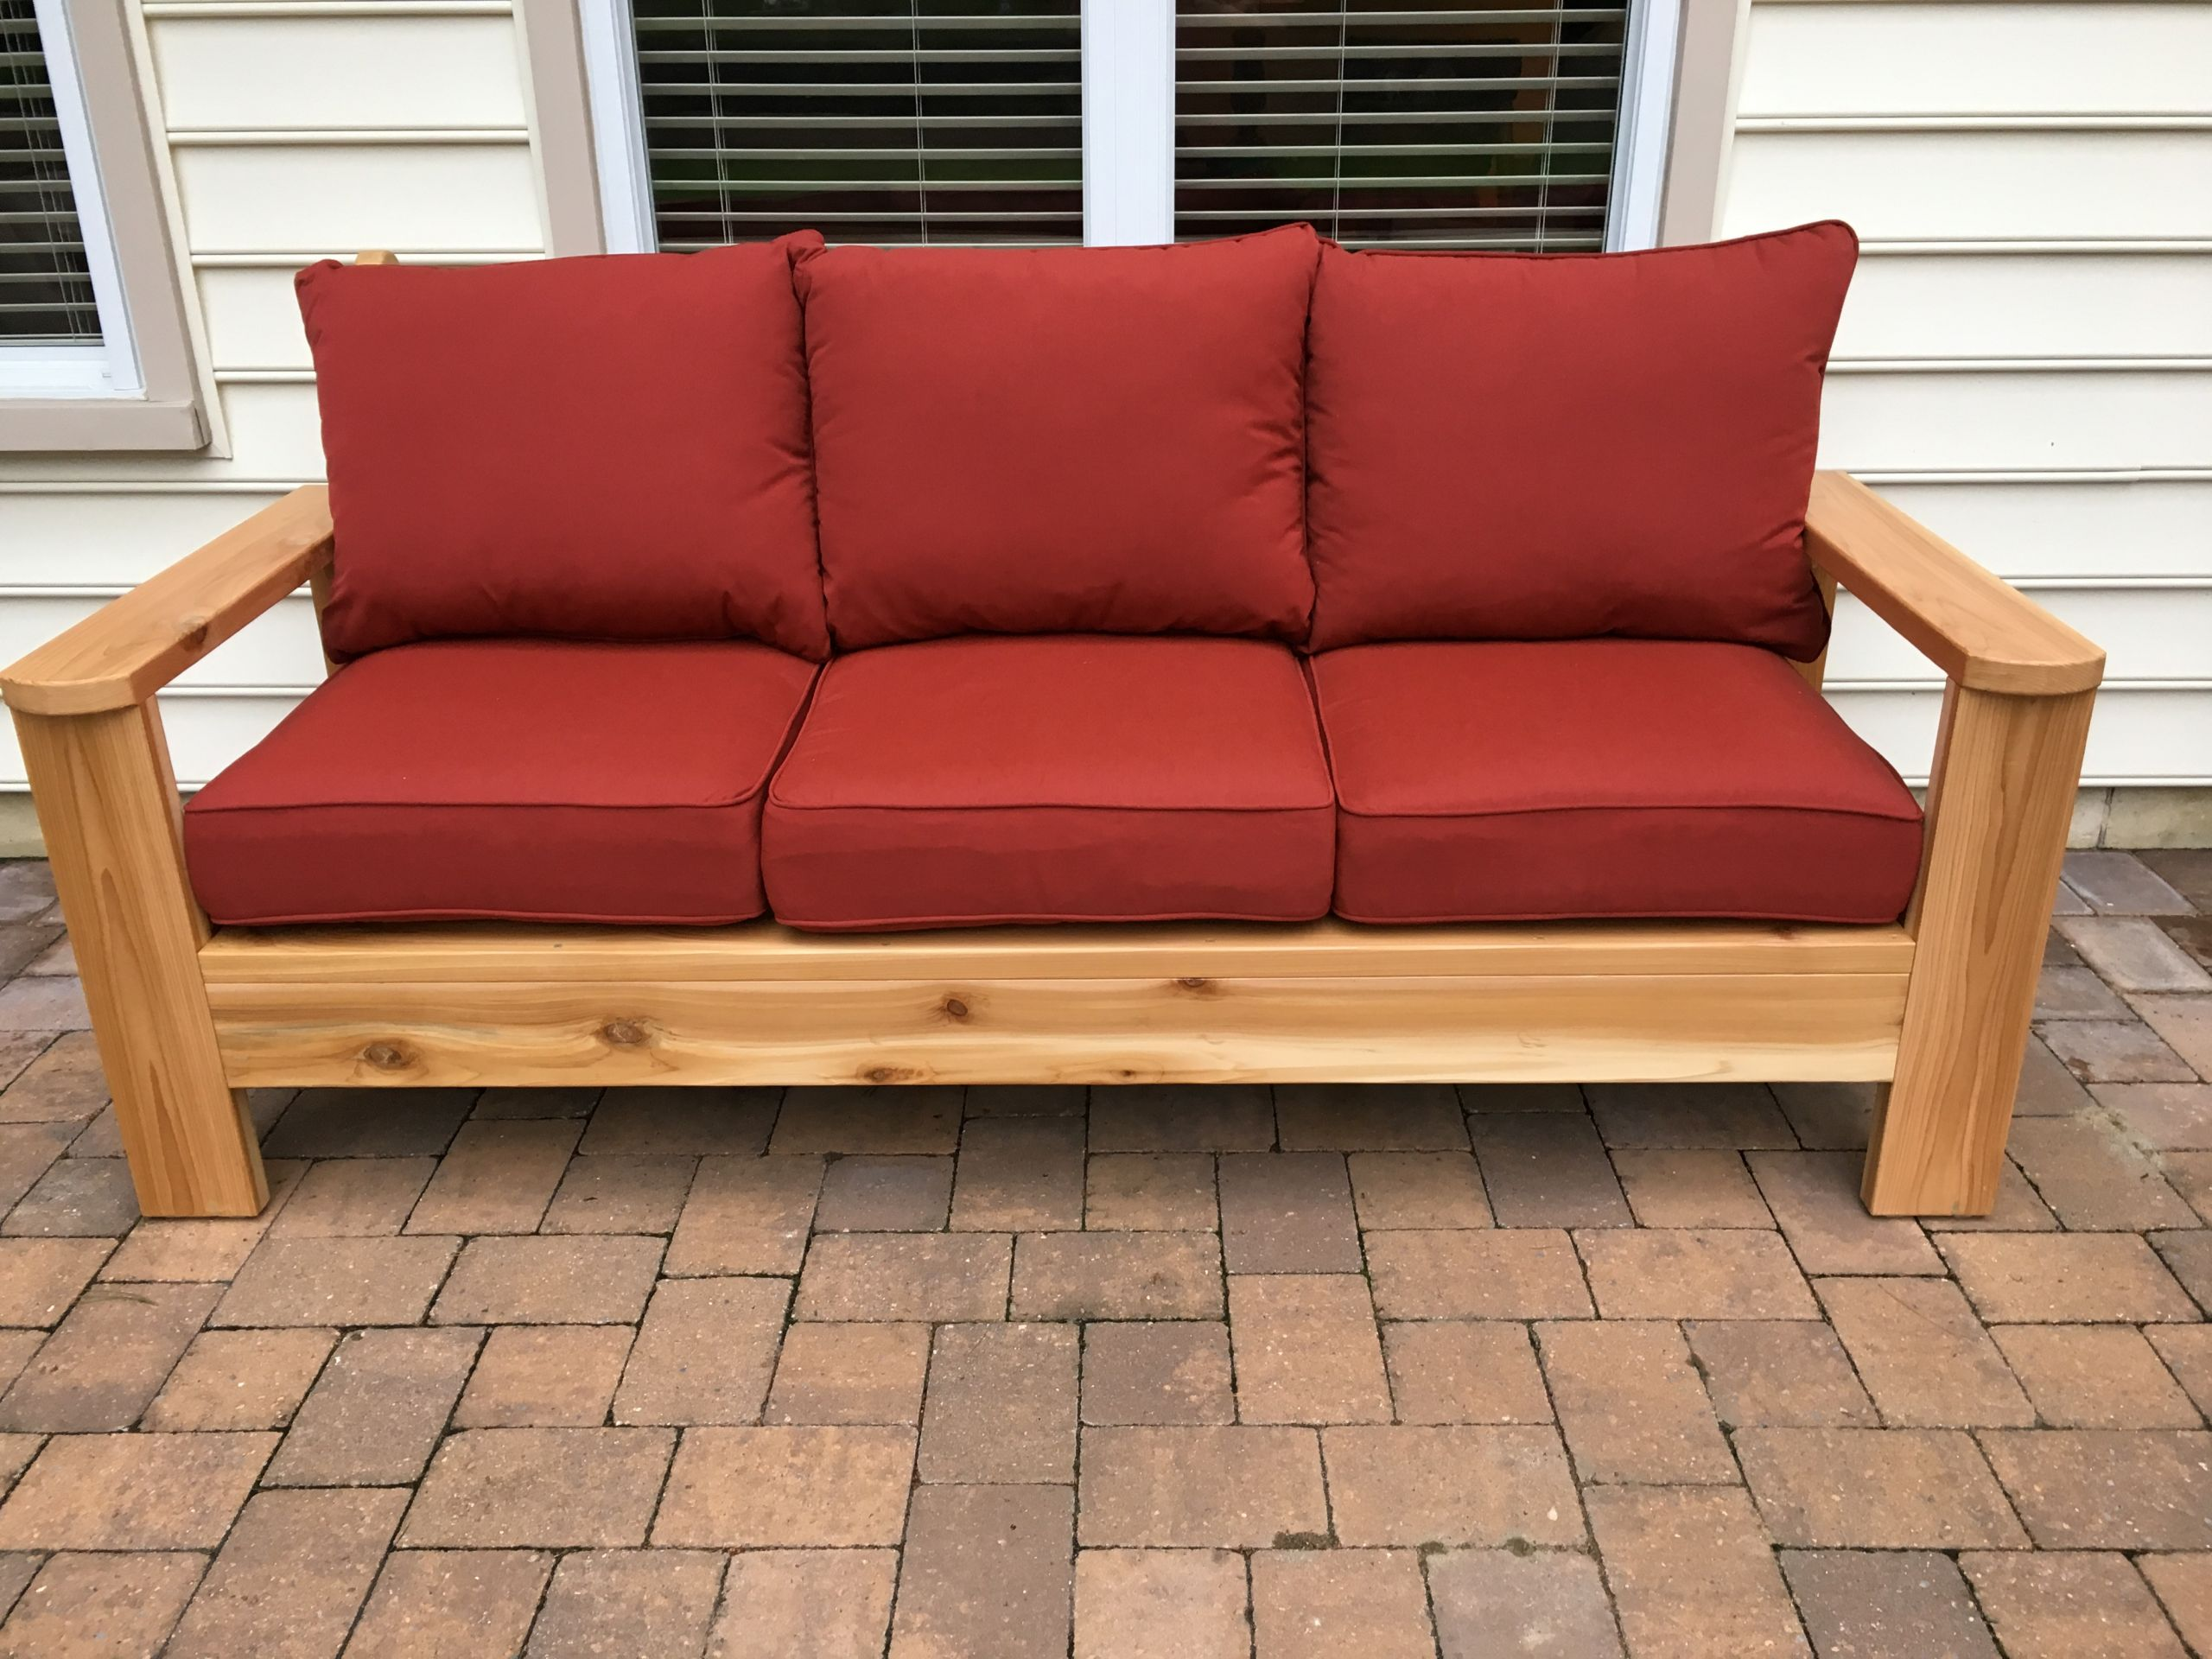 1583874636 629 The Best Ideas for Outdoor sofa Diy – Home Family Style and Art Ideas